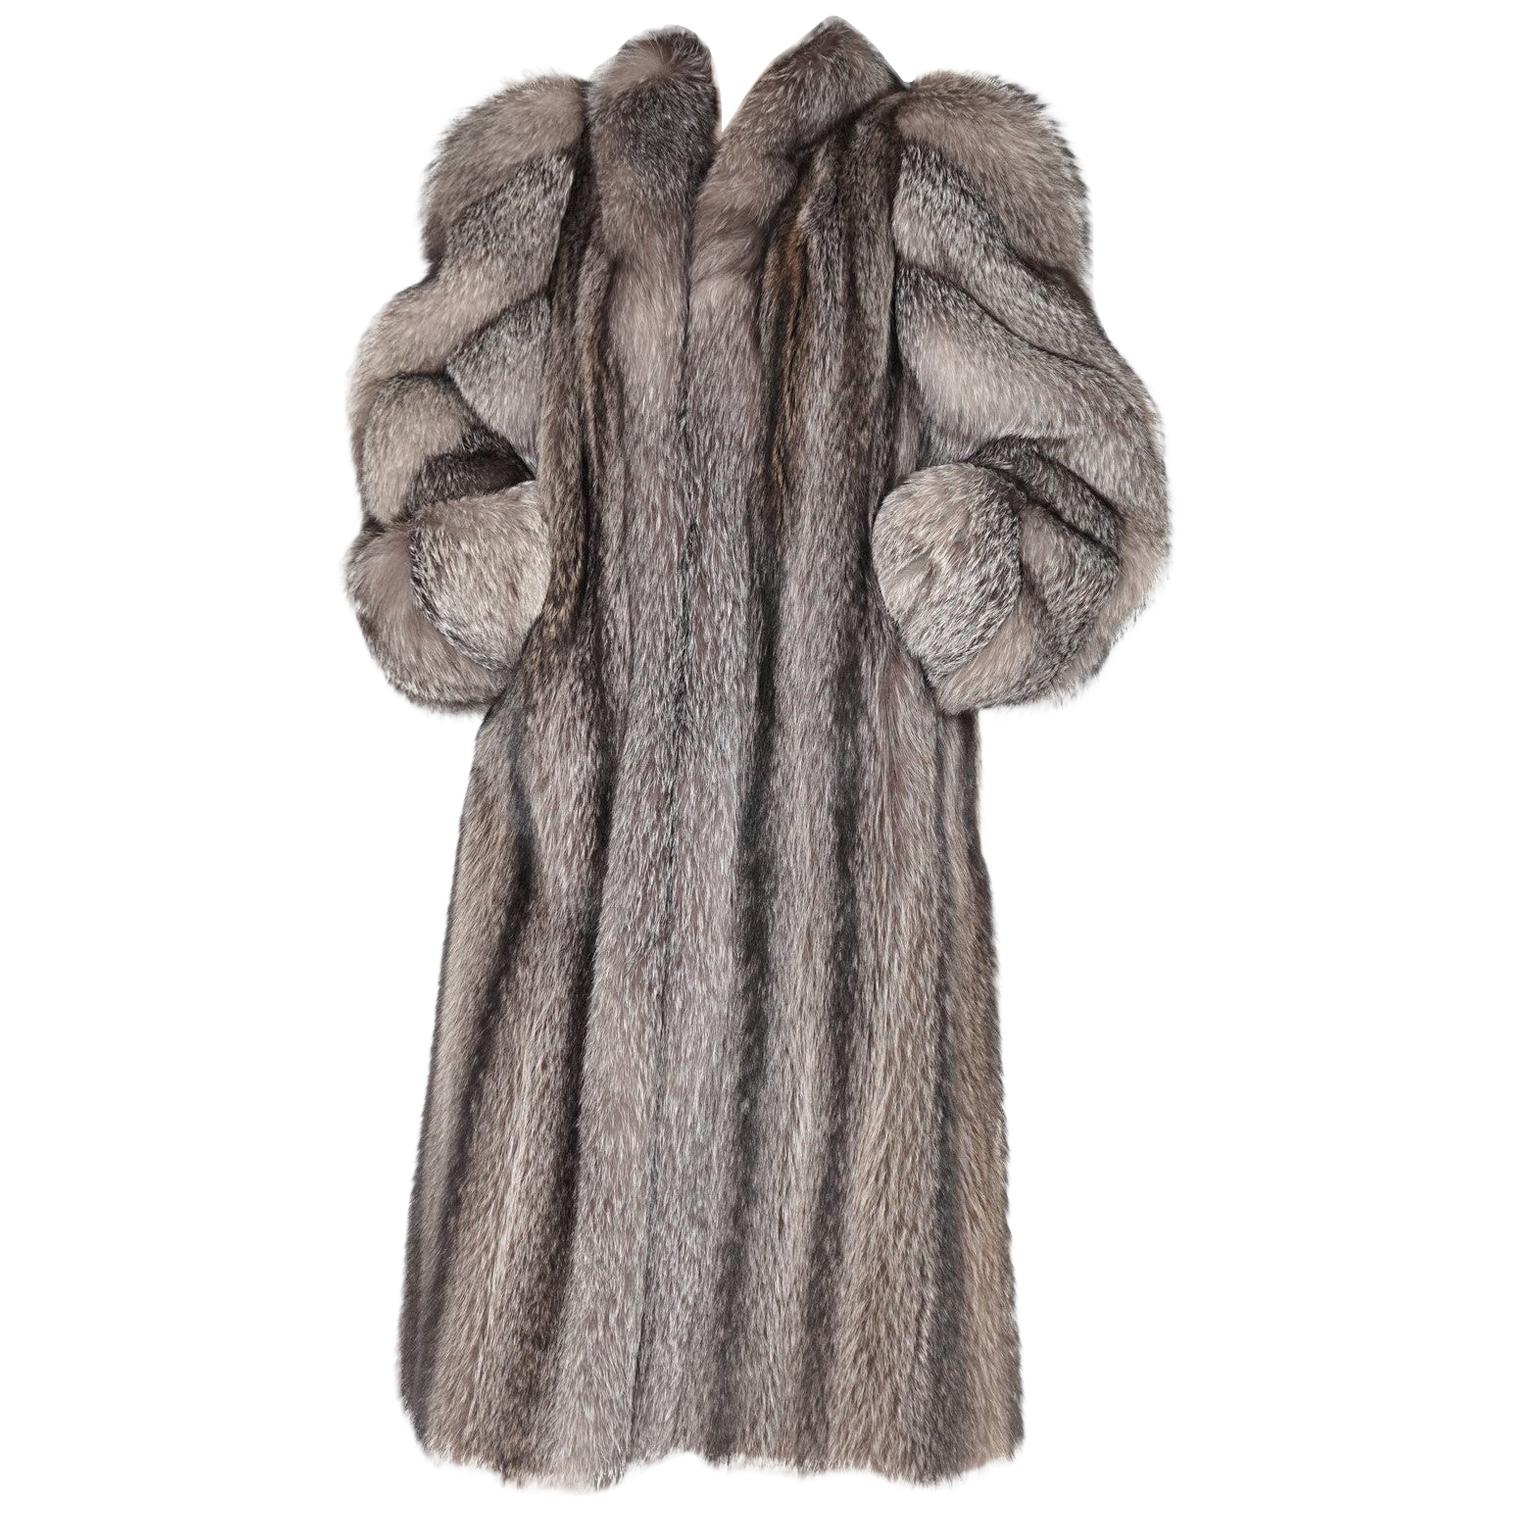 Raccoon fur coat with silver fox trim and sleeves size 8-10